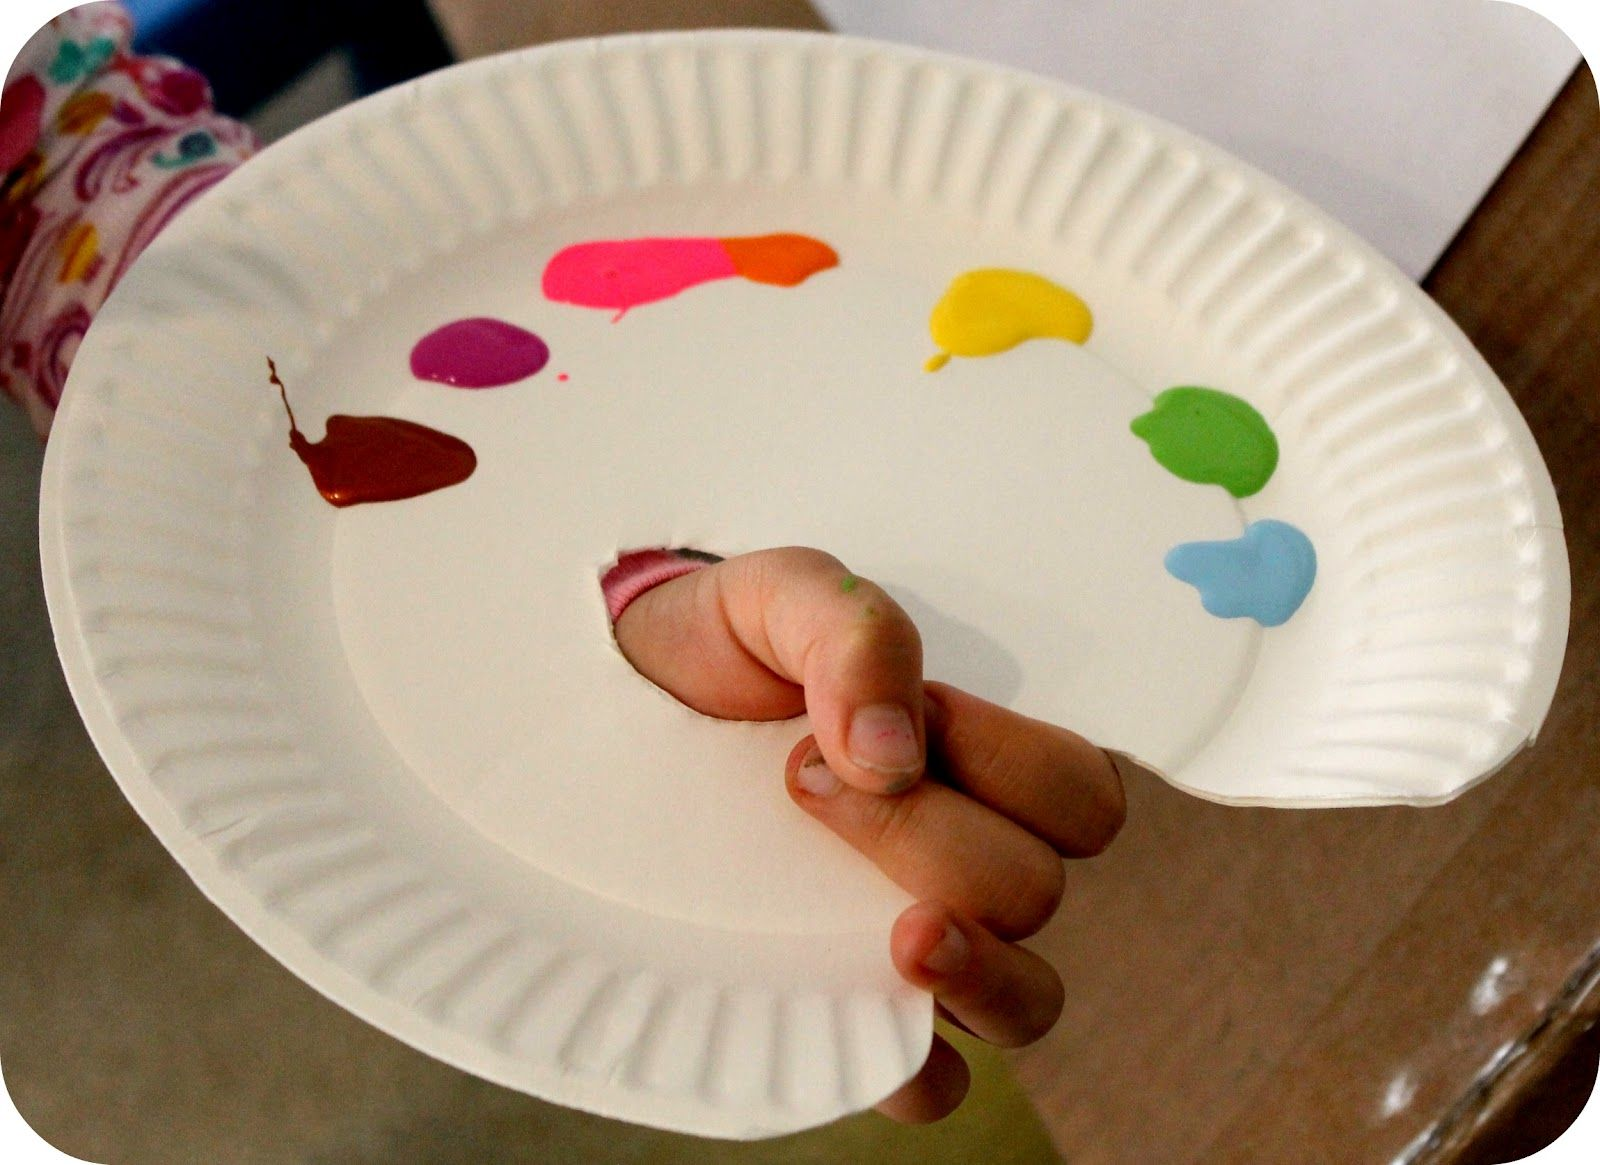 DiY Project Paper Plate Painter's Palette for Kids